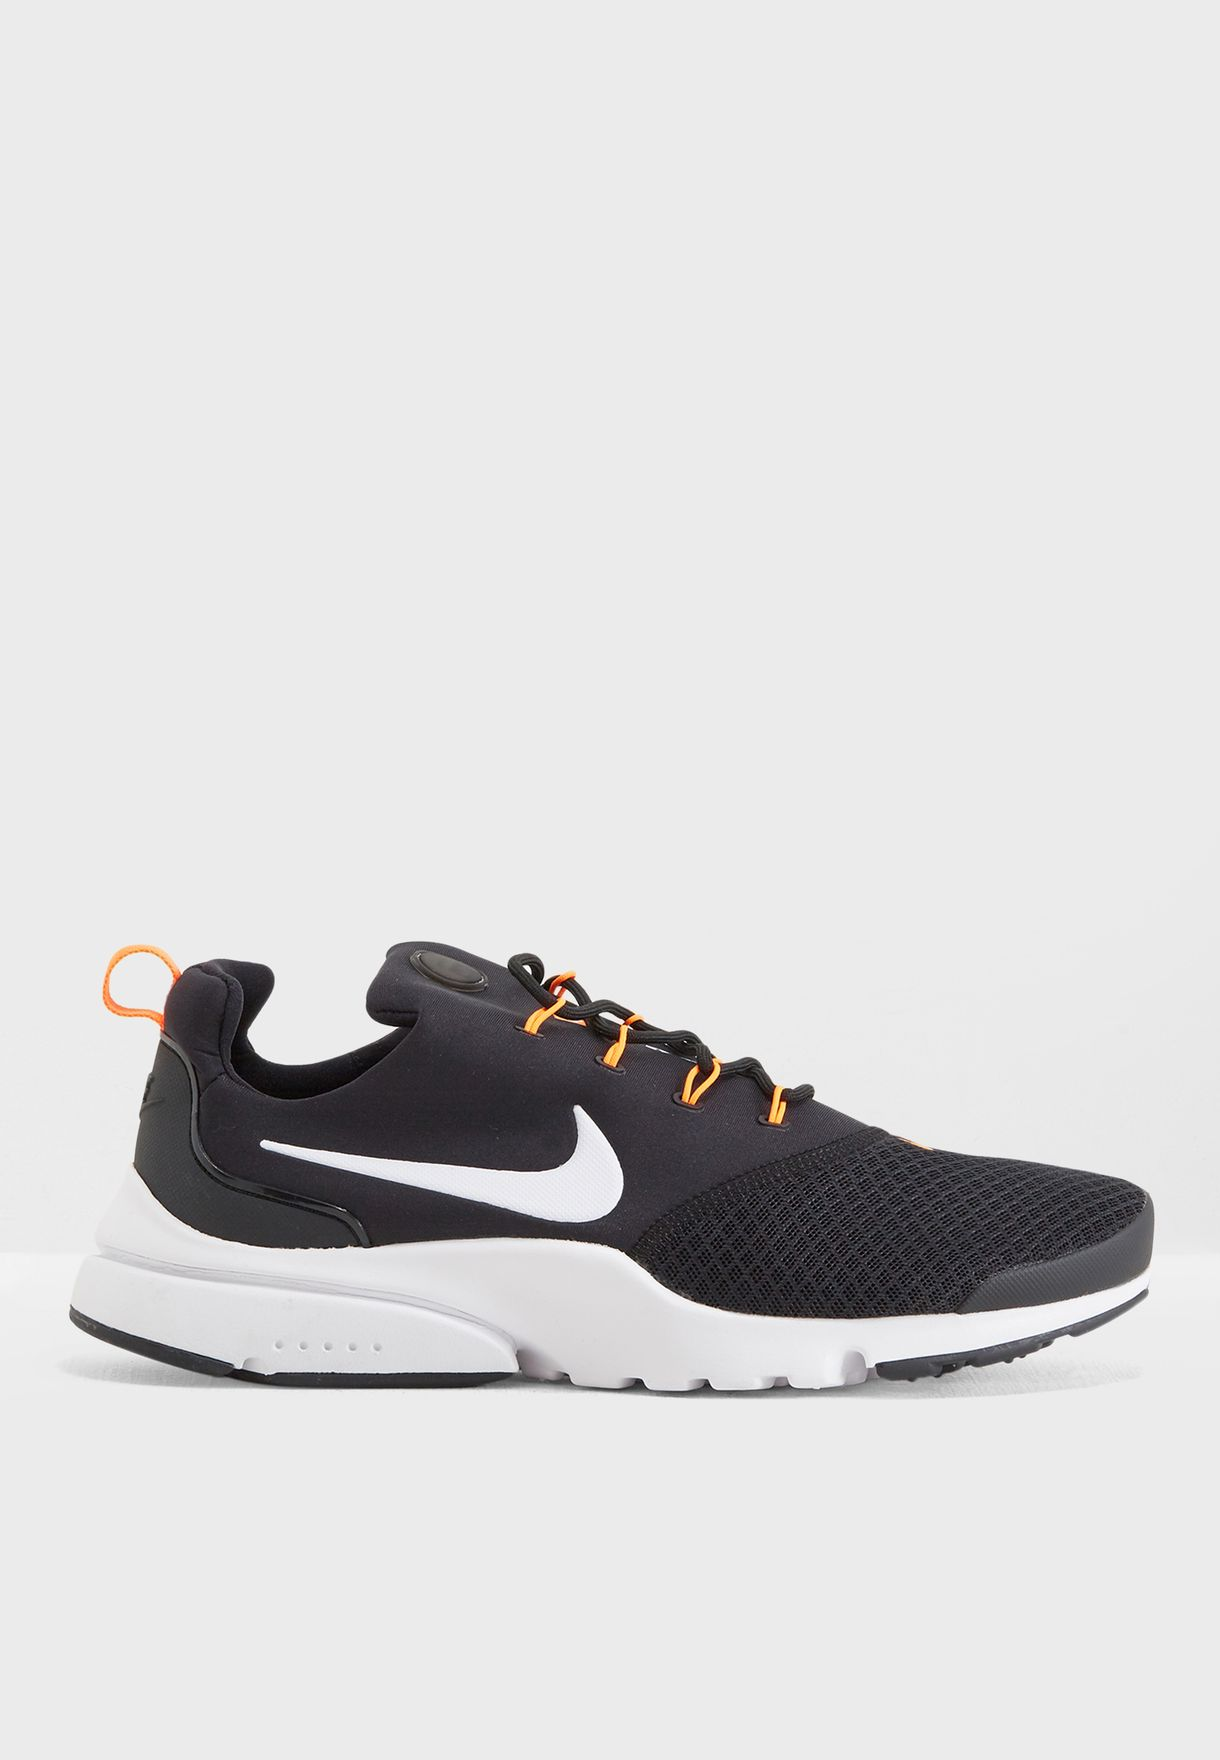 reputable site ad5dd 2bb08 Shop Nike black Presto Fly JDI AQ9688-001 for Men in UAE - N